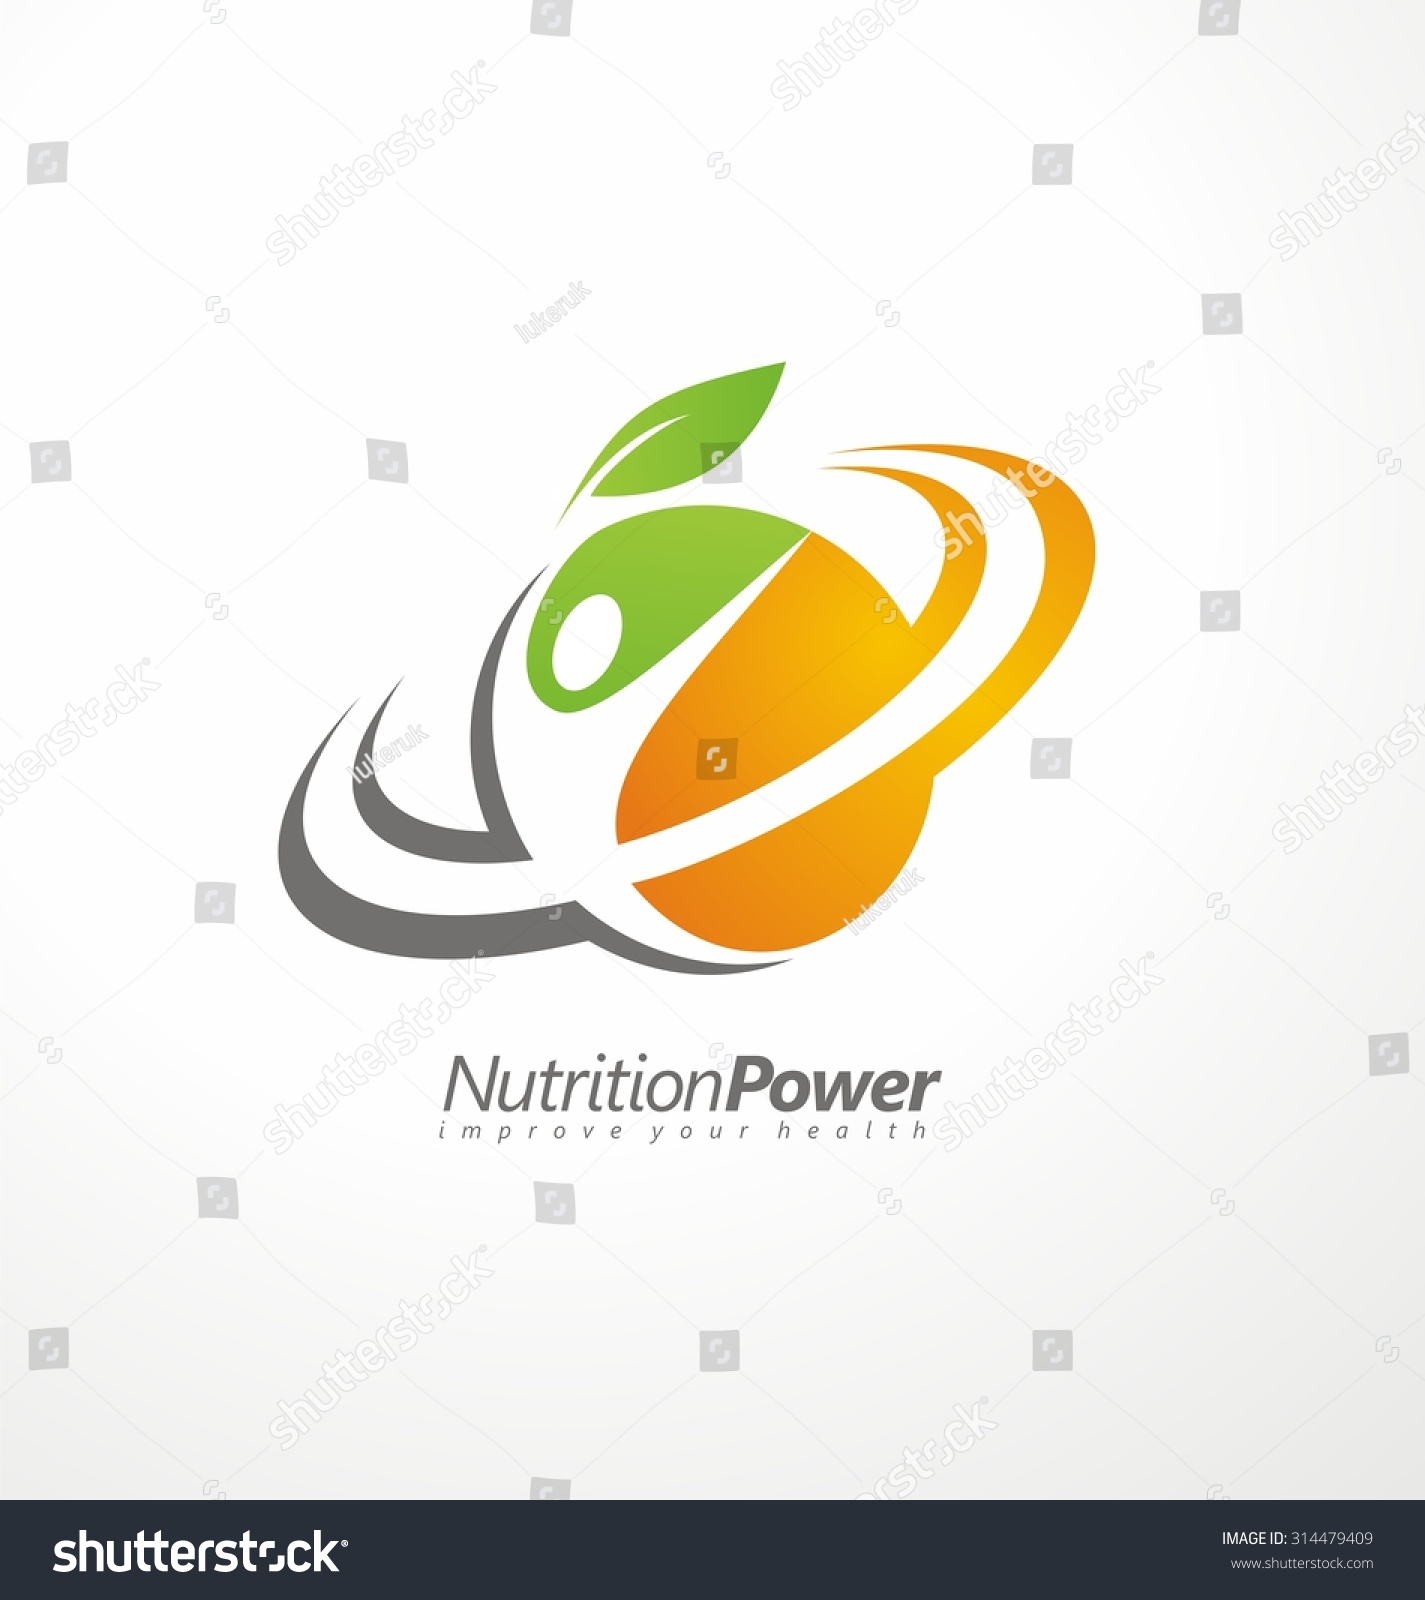 Design Idea stock vector stockphotos idea design Organic Health Food Creative Symbol Layout Nutrition And Diet Logo Design Idea Fruit And Organic